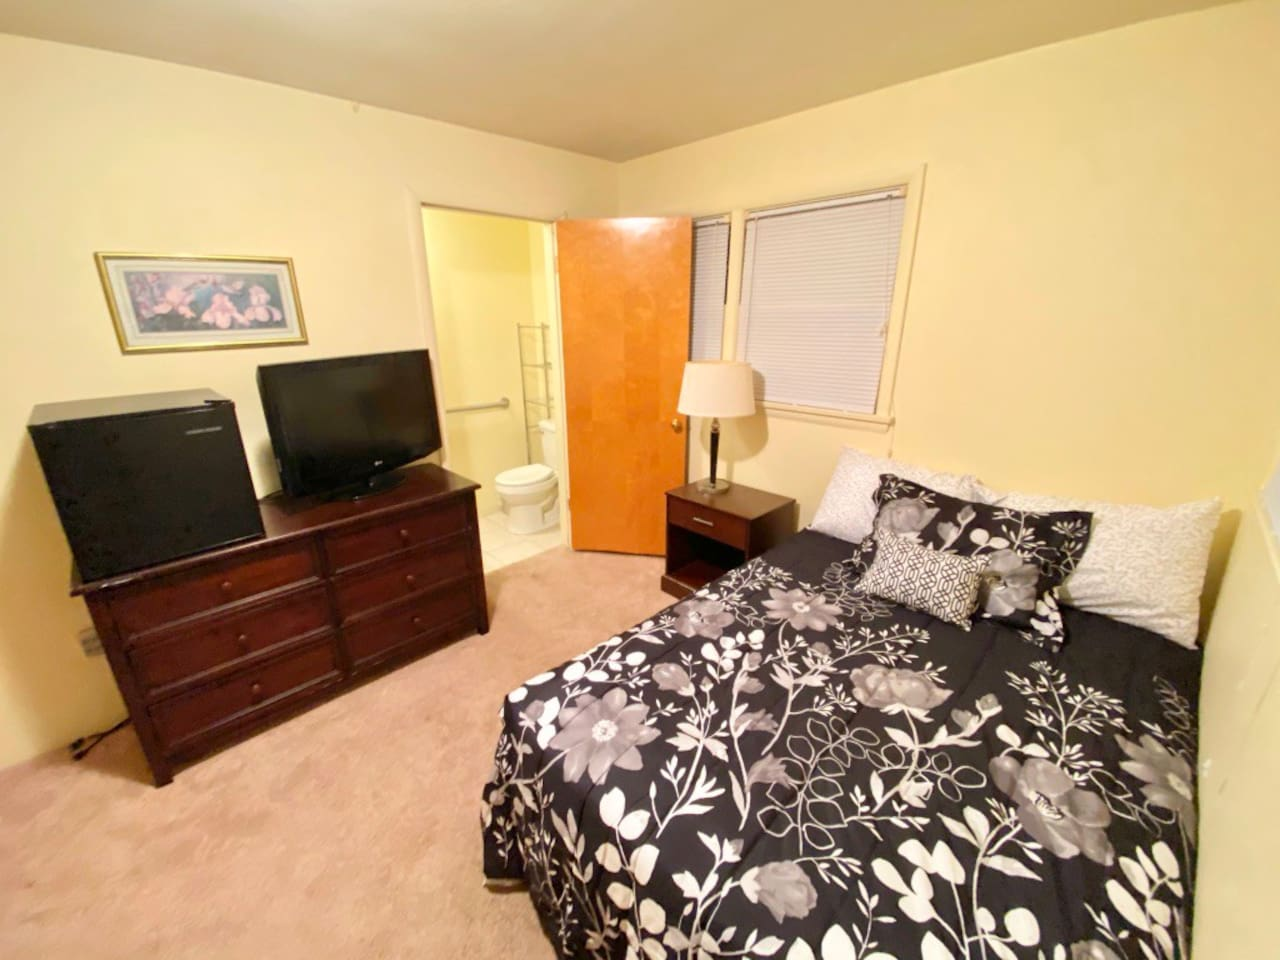 Private room includes 1/2 bath, mini fridge, Tv and desk.  Full bathroom is shared with three other rooms. Every room has its own 1/2 bath.